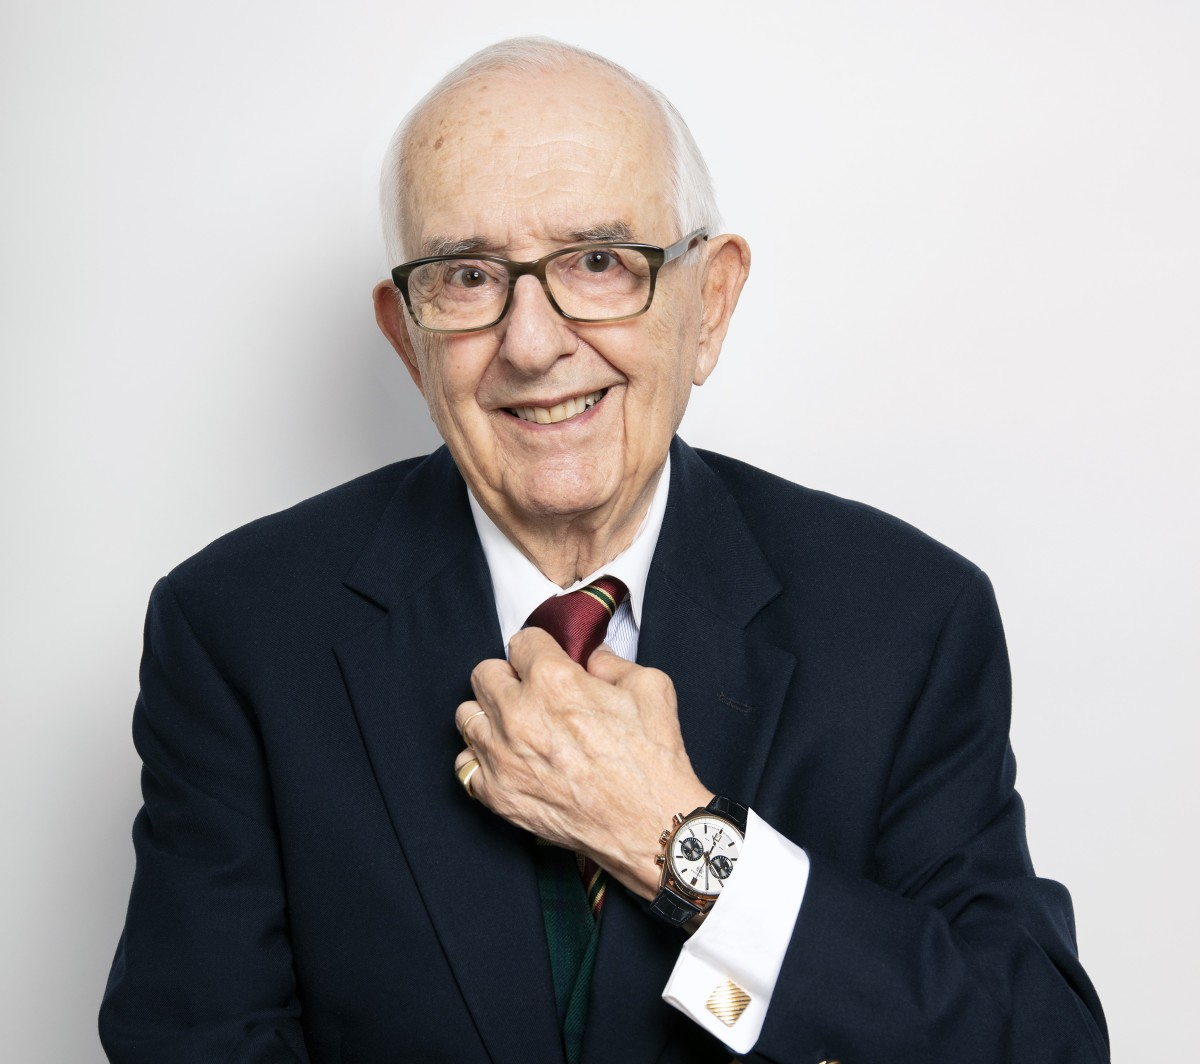 The Carrera's creator and Tag Heuer's honorary chairman, Jack Heuer.